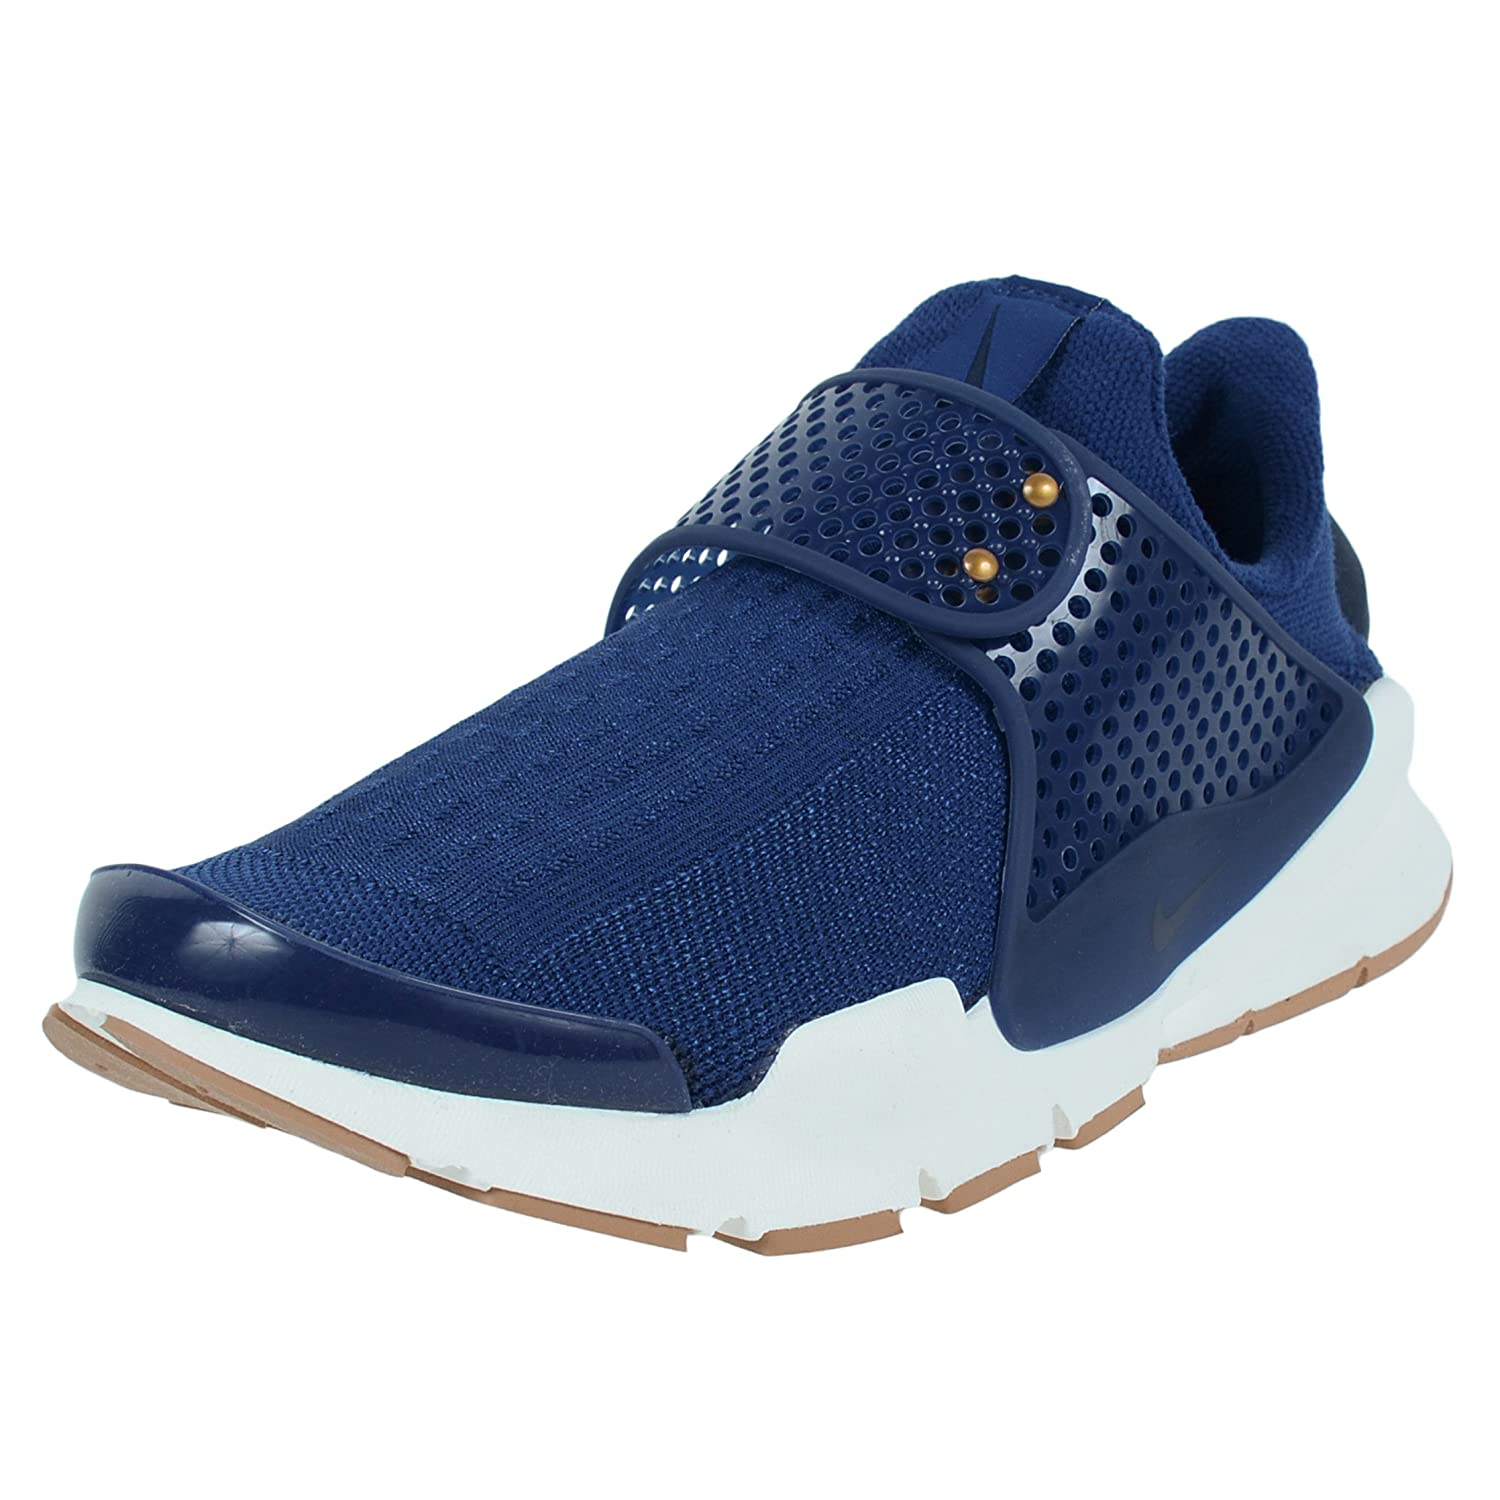 NIKE Womens Sock Dart Running Shoes B01HK3VDQY 8 B(M) US|Coastal Blue/Obsidian-Obsidian-Silver